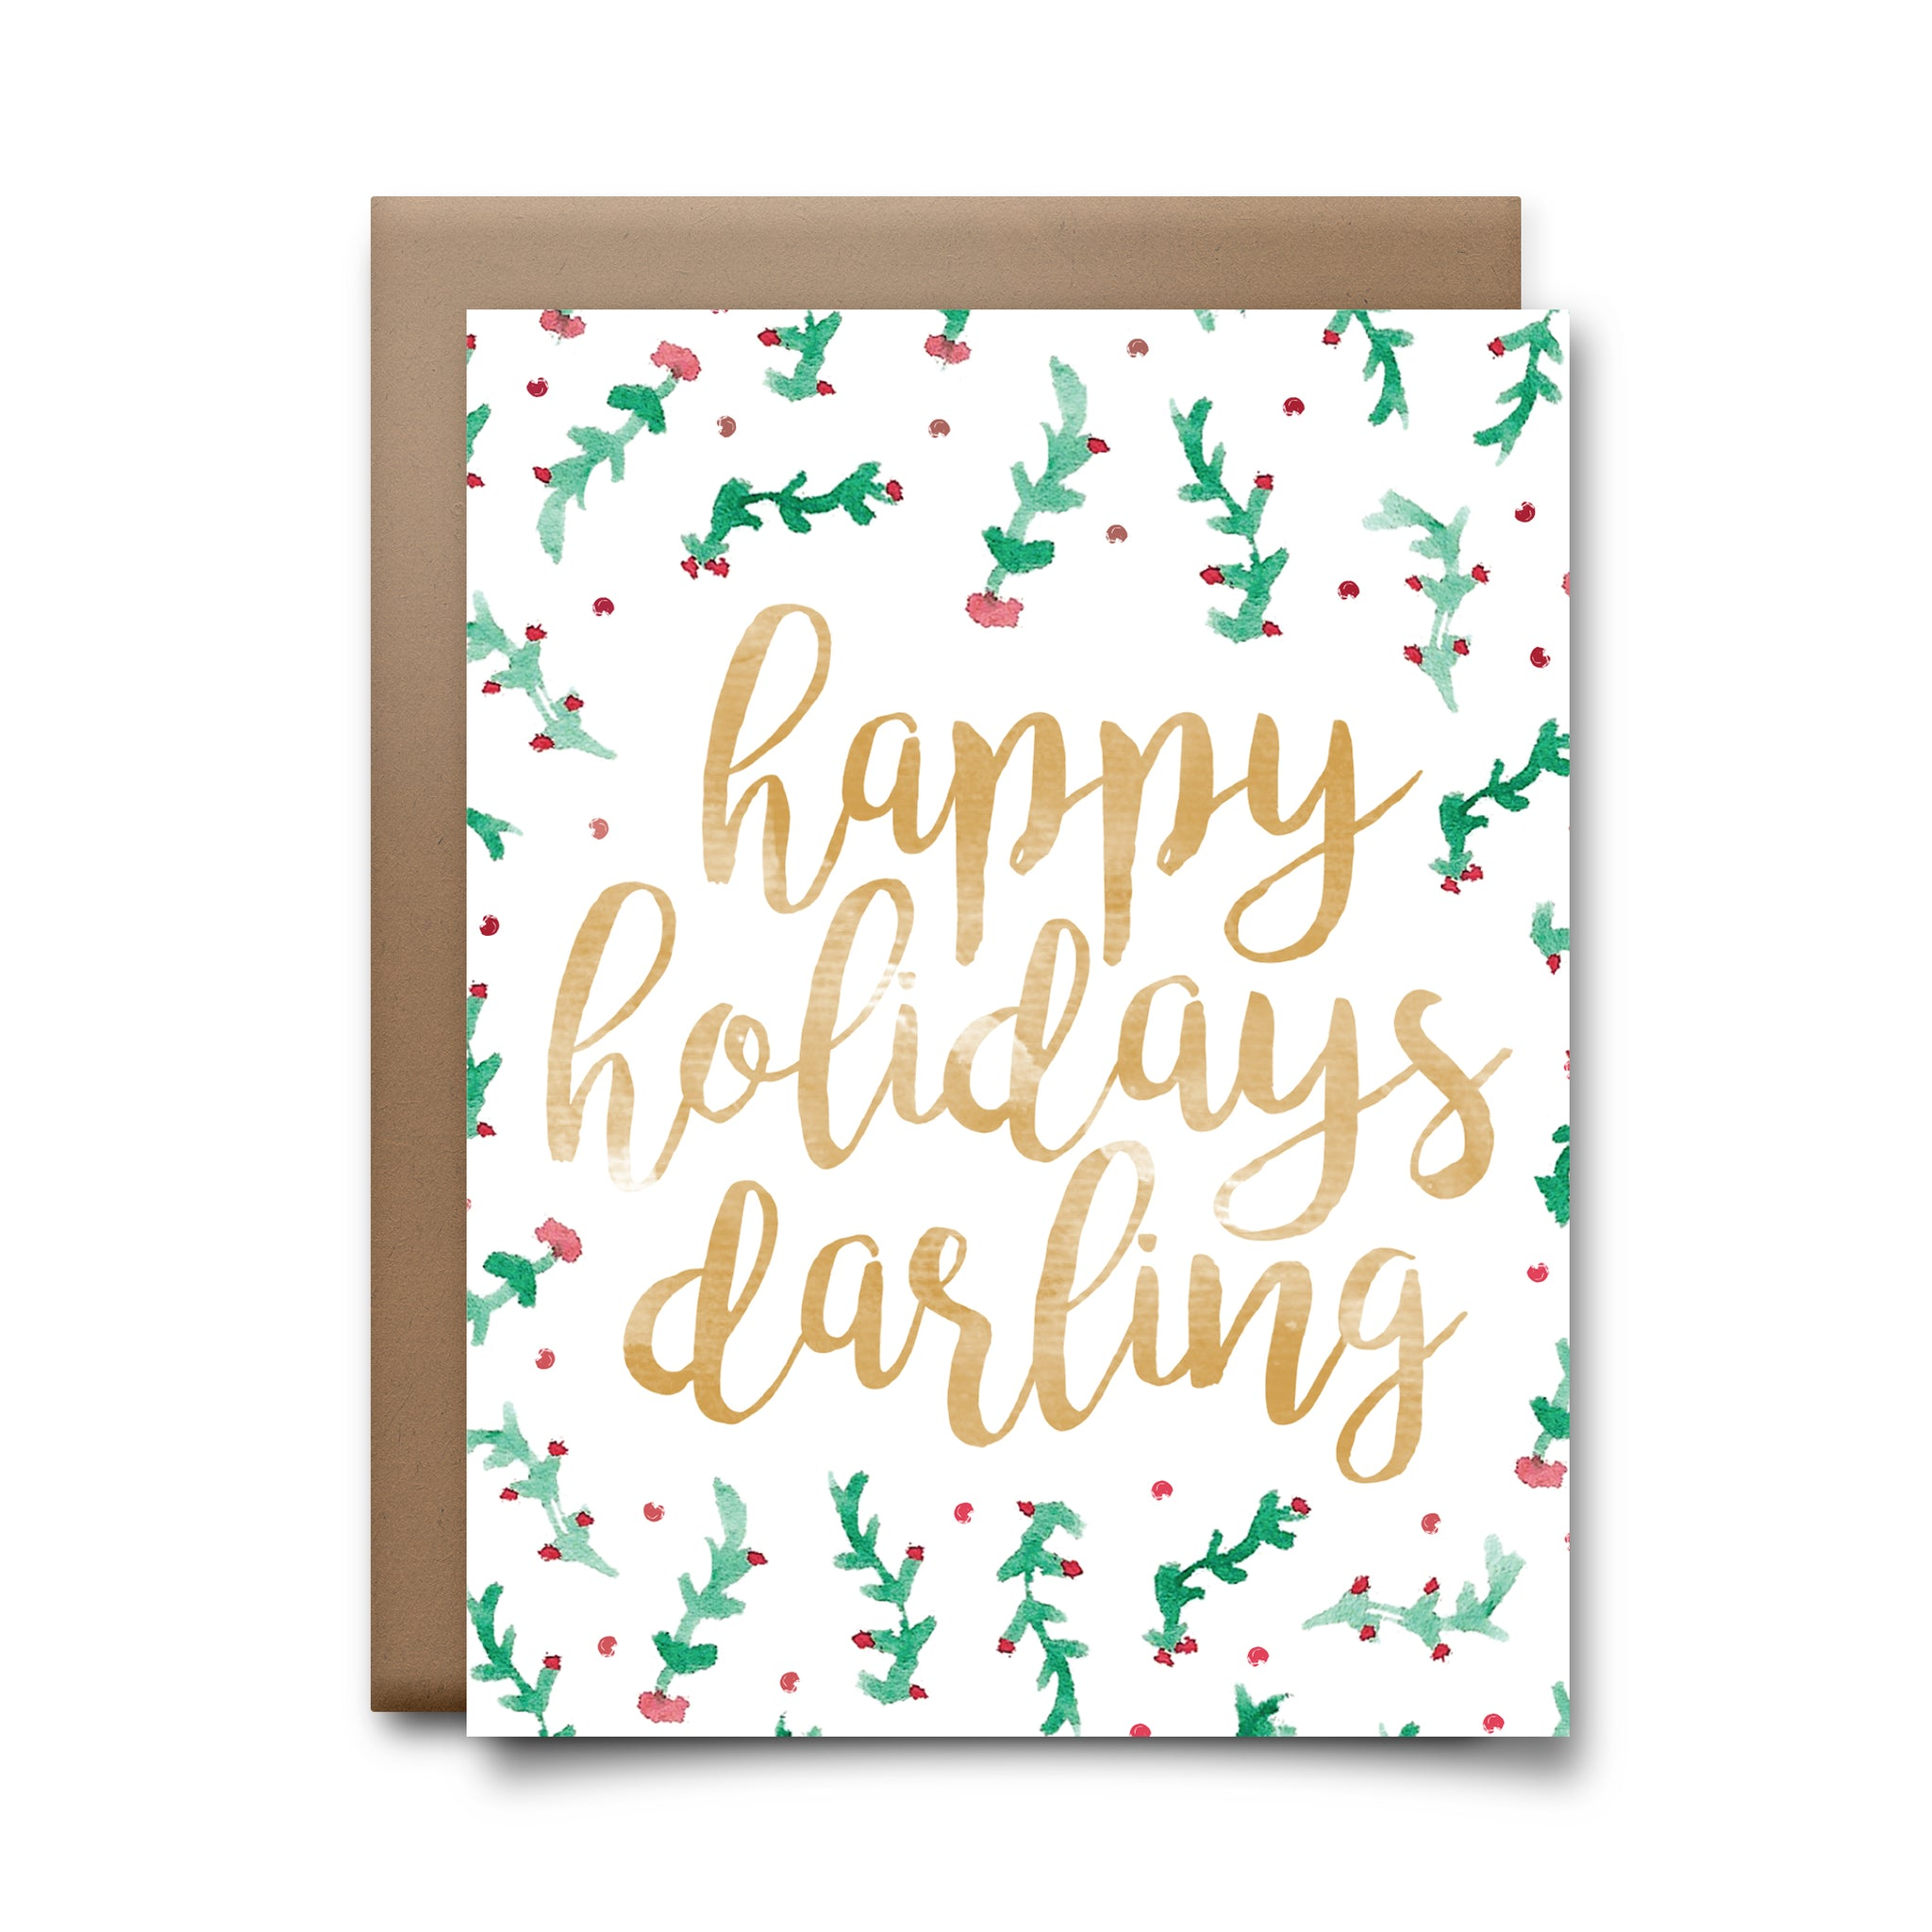 Happy Holidays Darling Greeting Card Choke Shirt Company